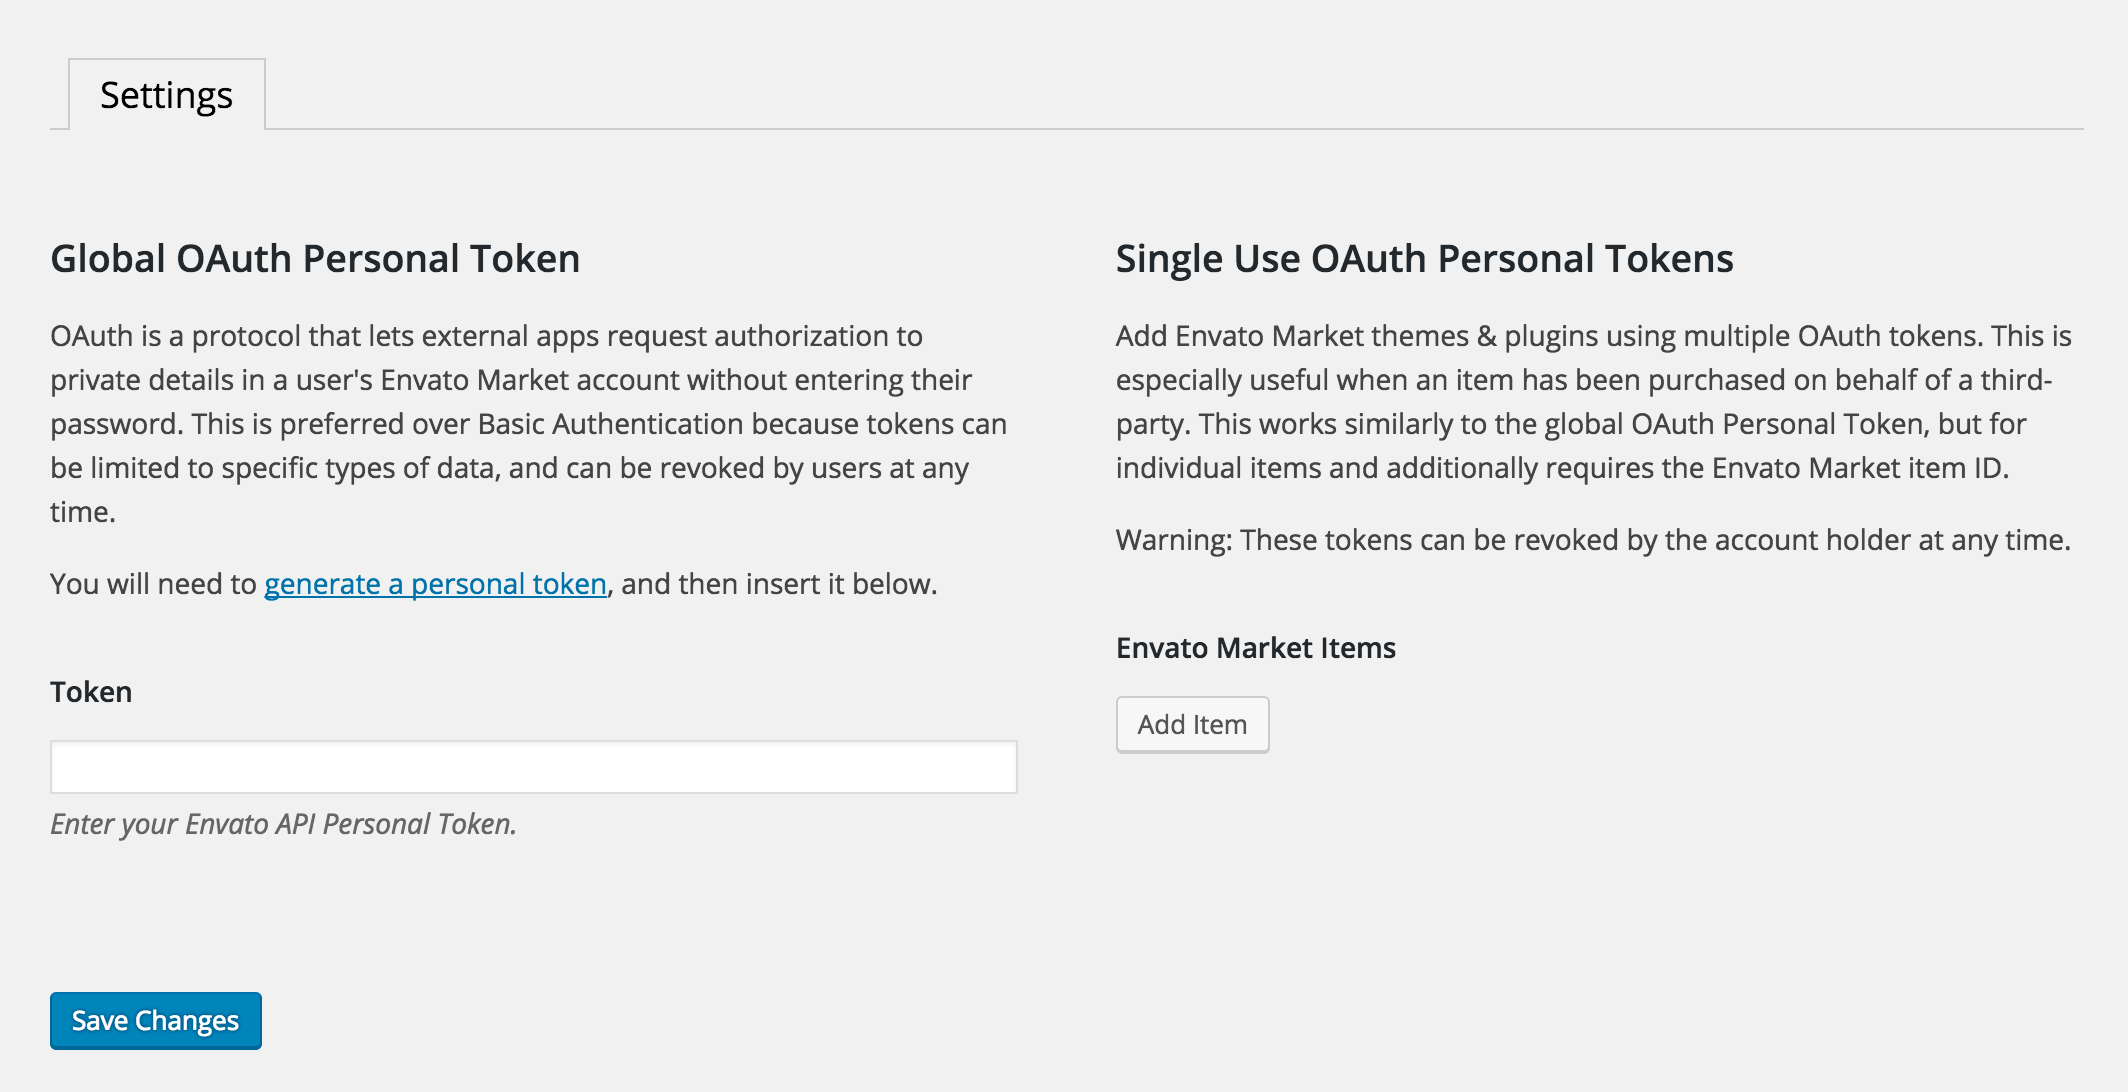 Global OAuth Personal Token